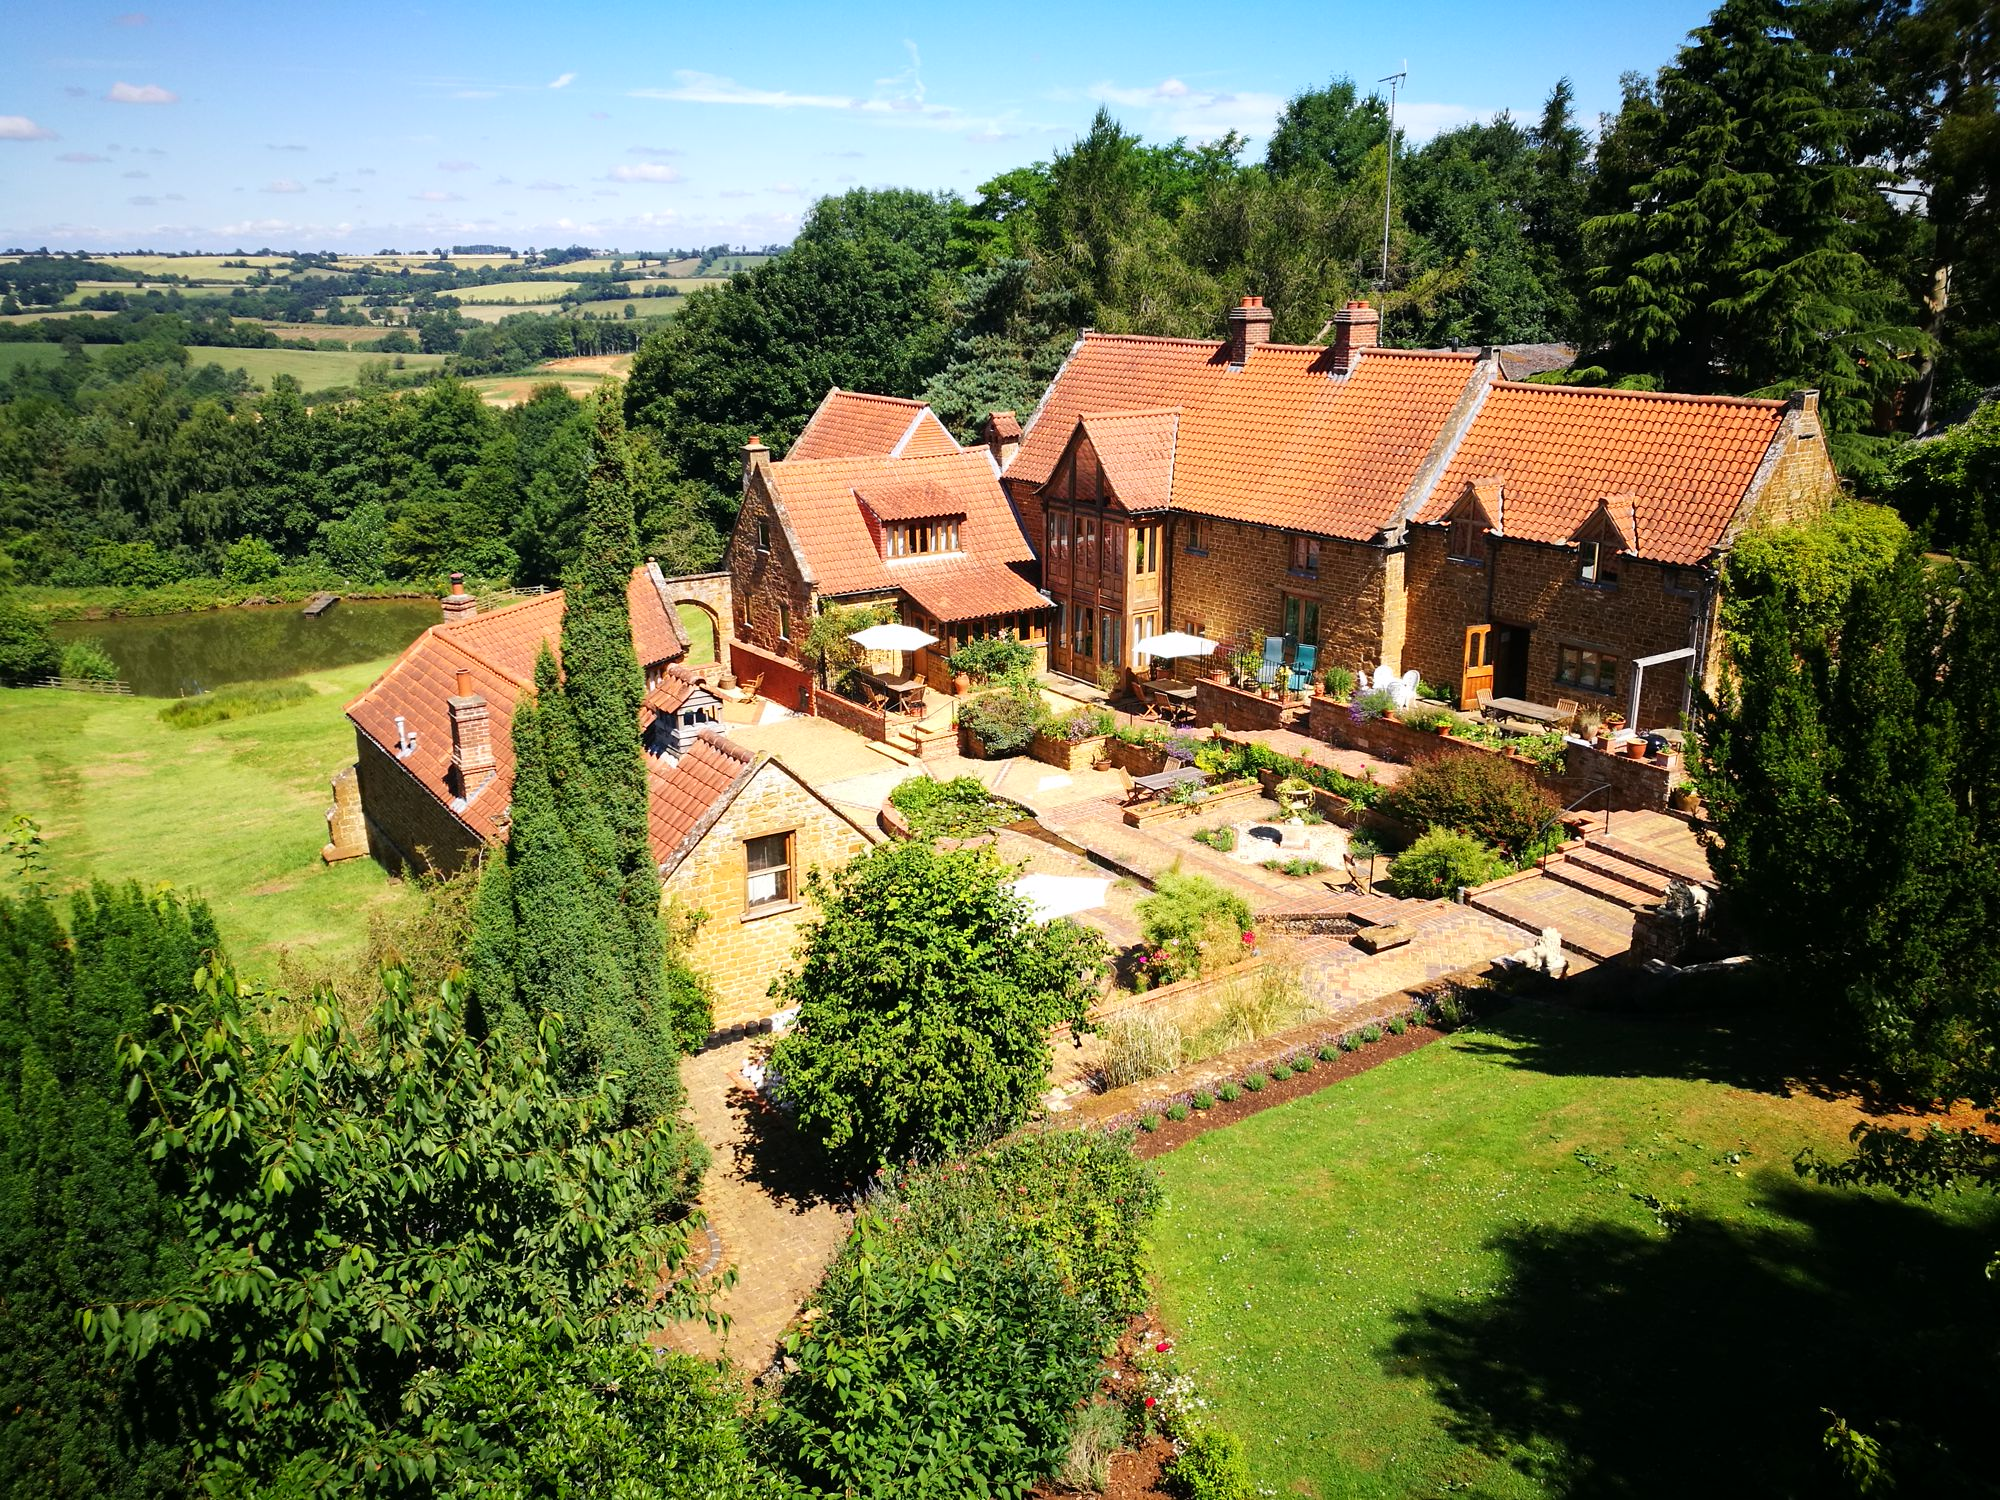 Self-Catering in UK holidays at Cool Places